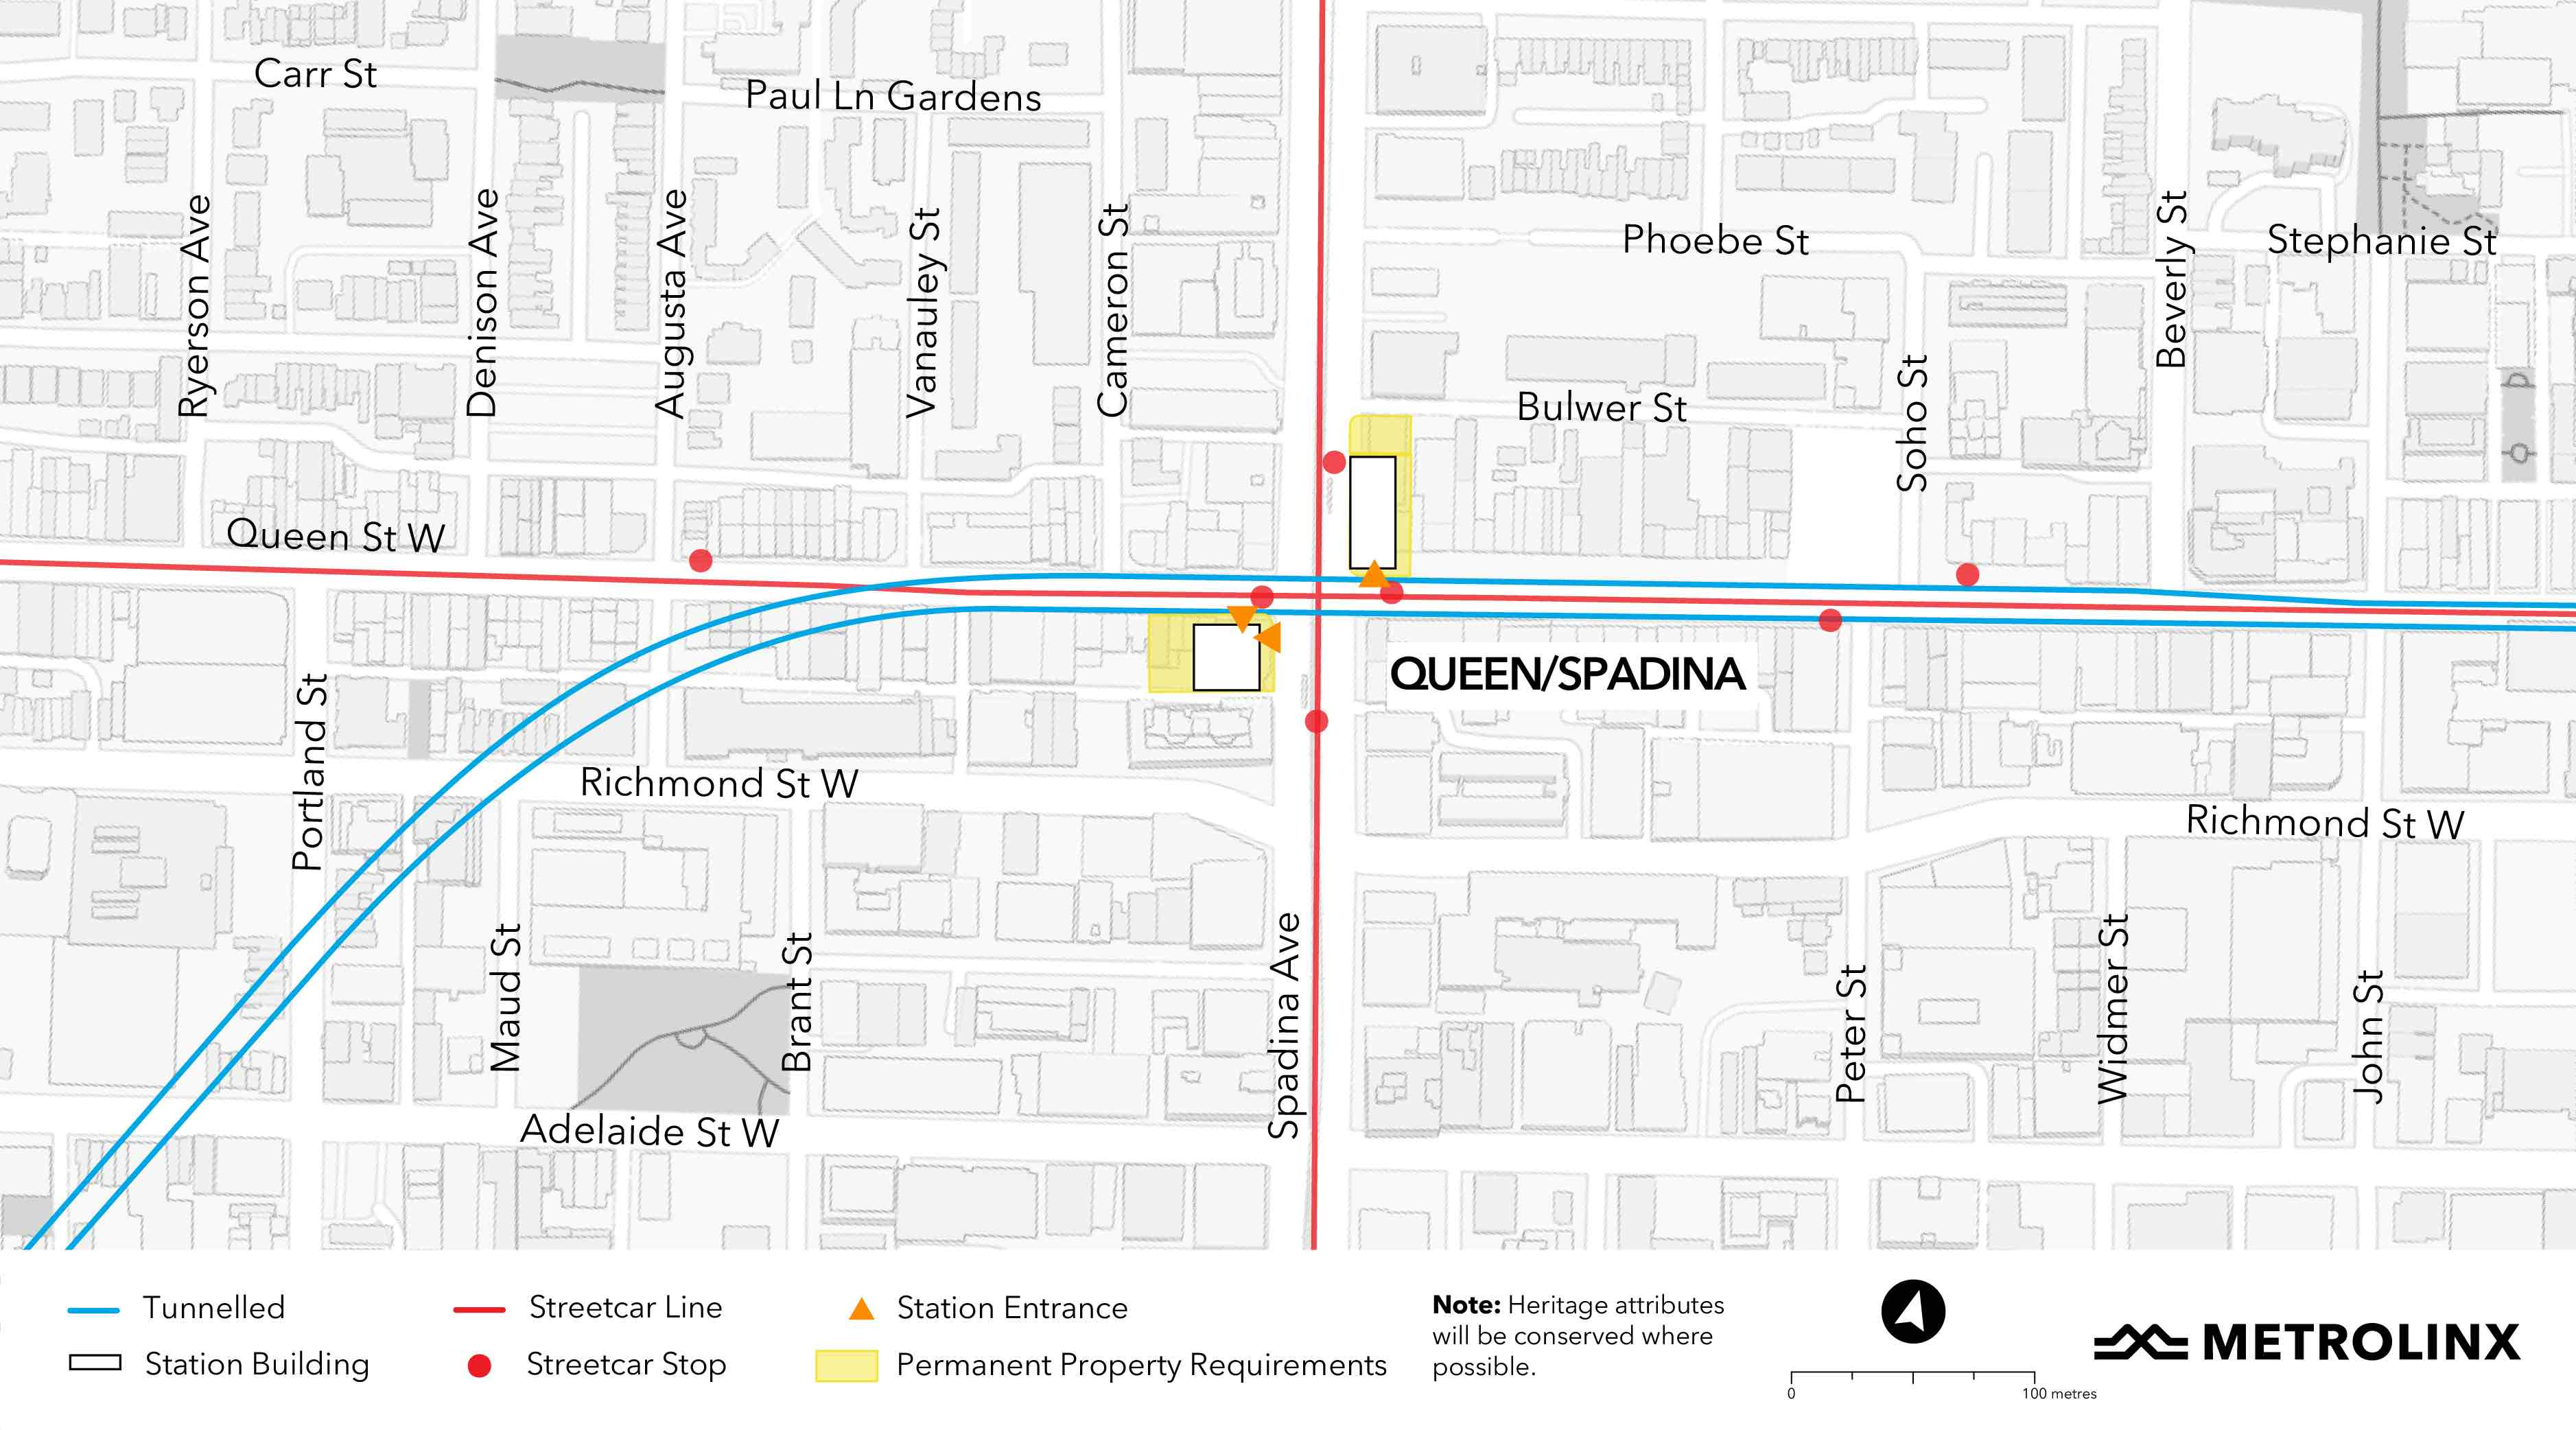 portion of the map containing Queen/Spadina